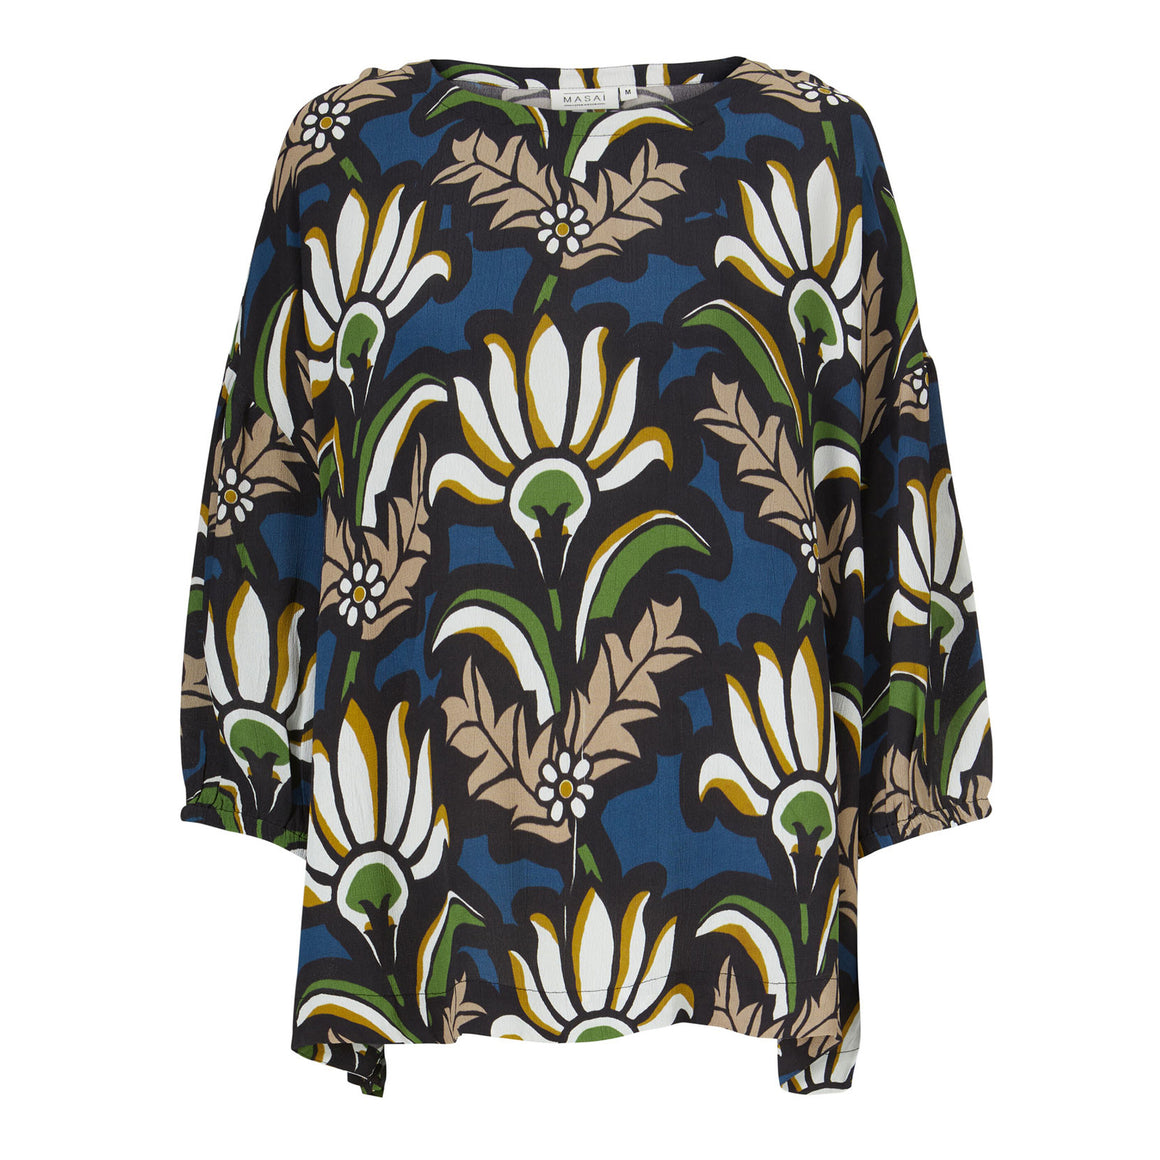 Beatrix Print Top for Women in Garden Green